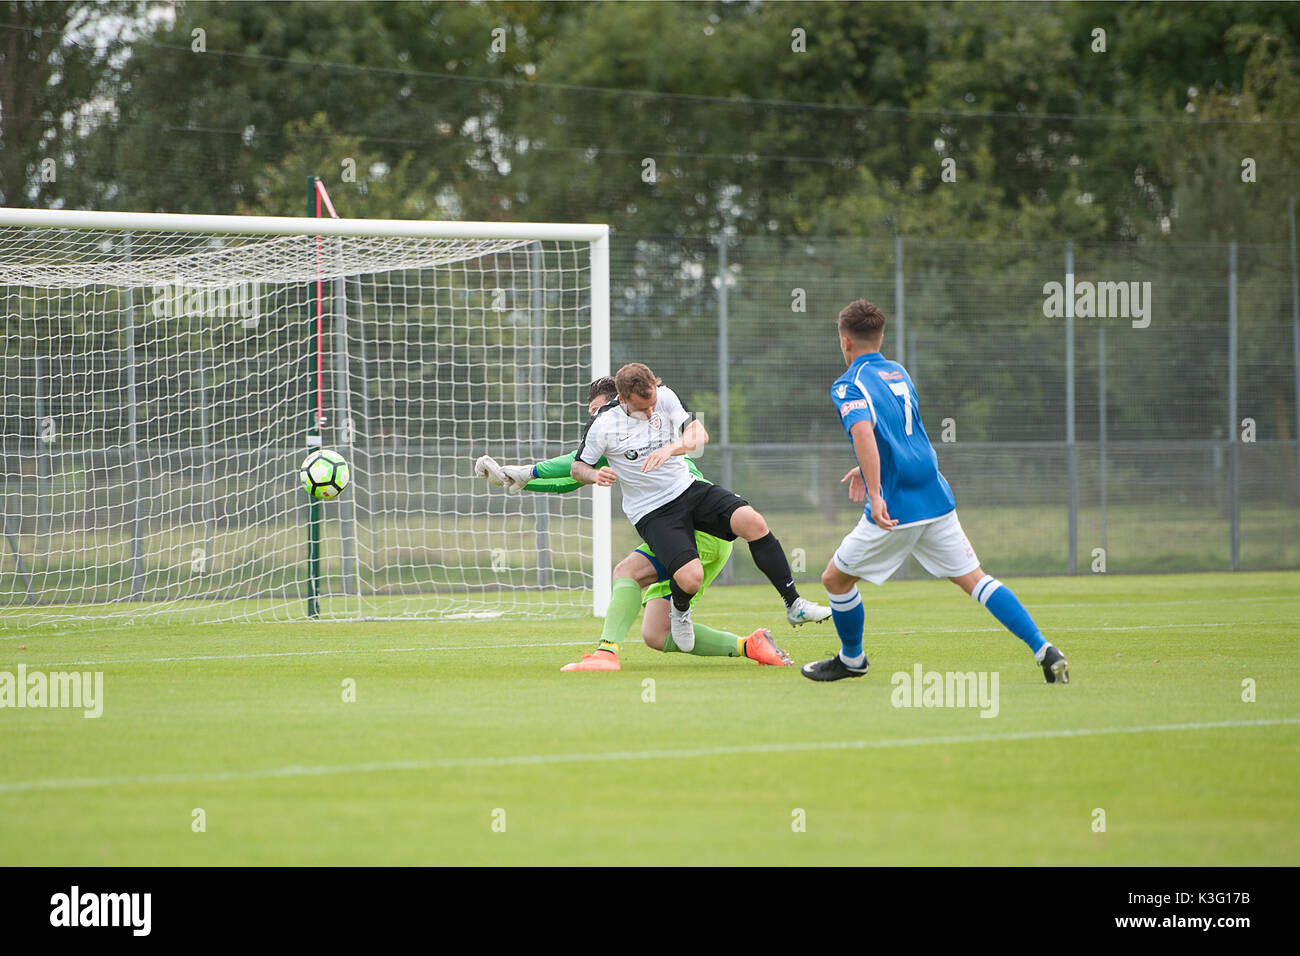 Shrewsbury, Shropshire, UK. 02nd Sep, 2017. Haughmond's Steven Hole is brought down by Matlock Town keeper and is awarded a penalty which he scores from. Credit: RICHARD DAWSON/Alamy Live News - Stock Image